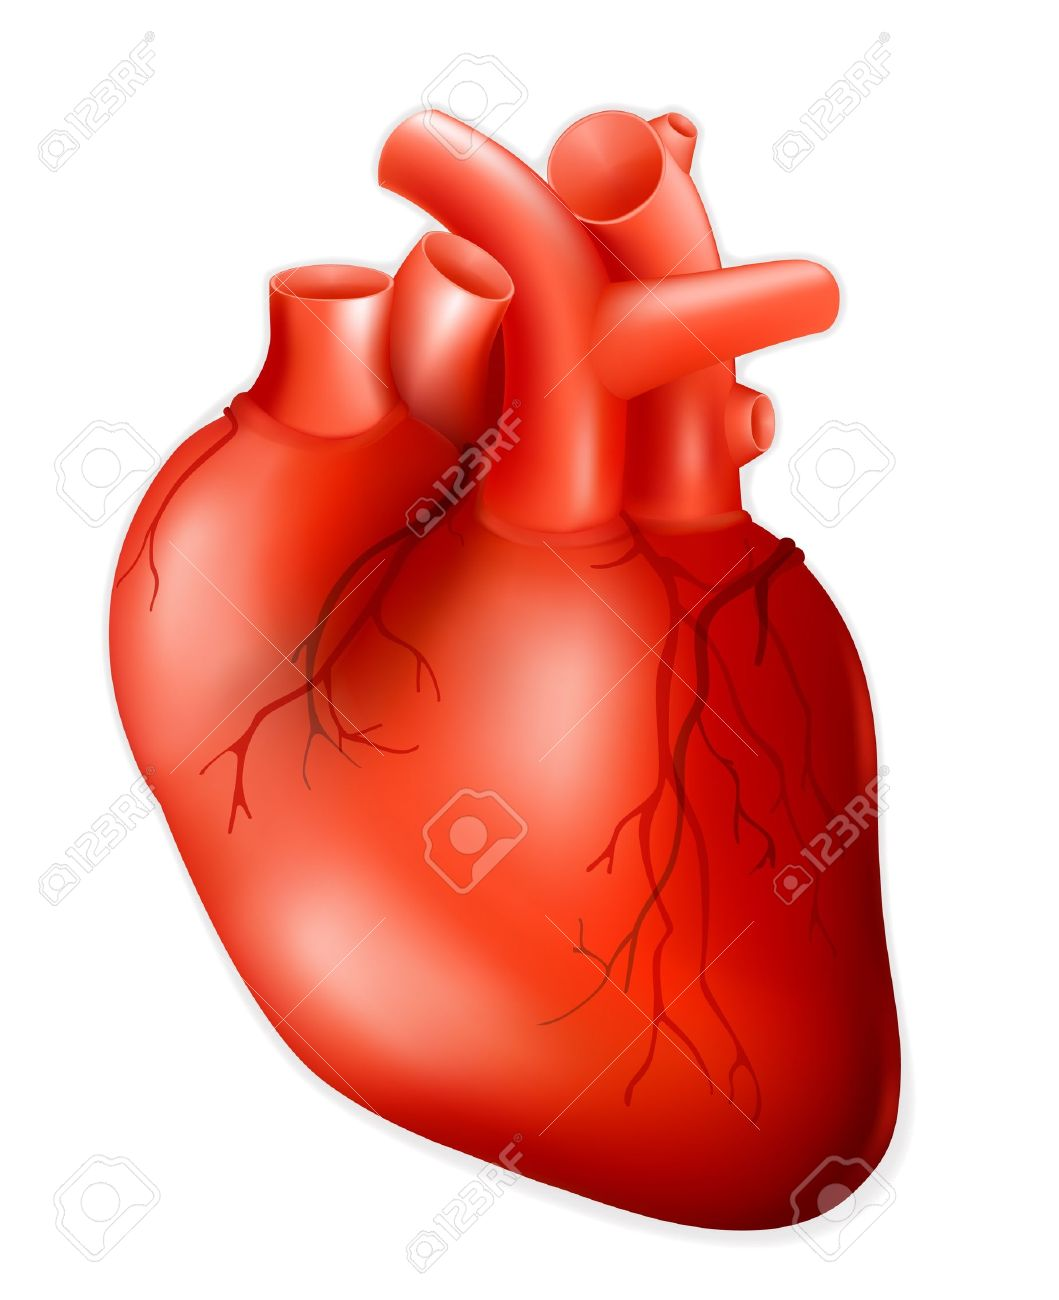 Human heart Stock Vector - 13781019